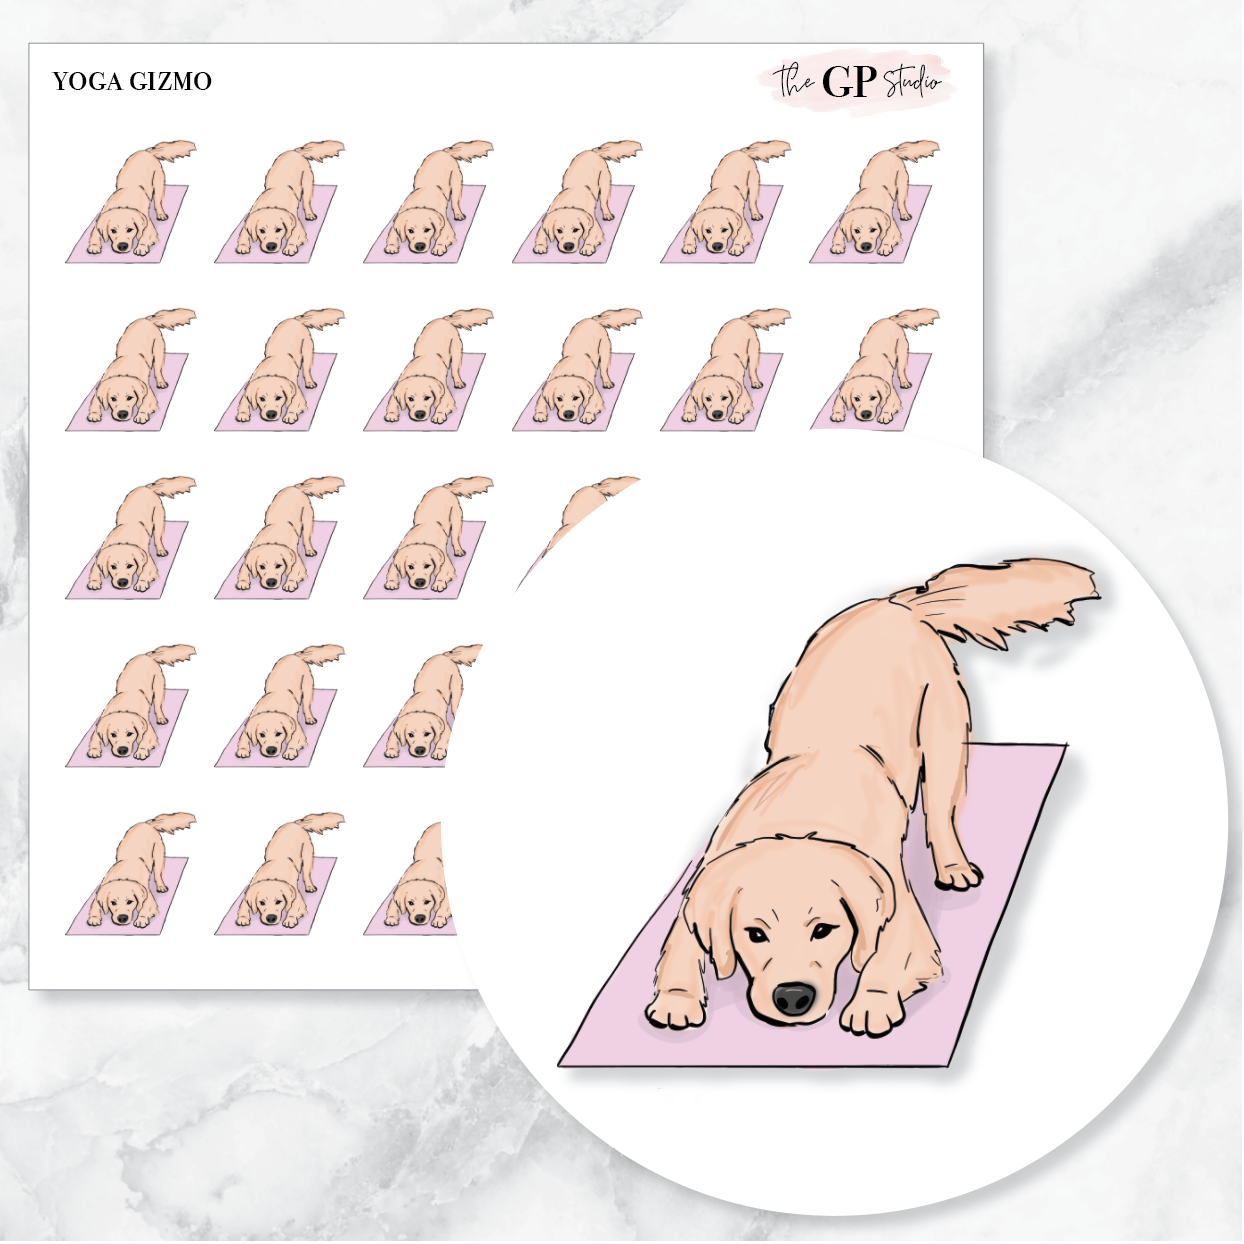 YOGA GIZMO Planner Stickers-The GP Studio